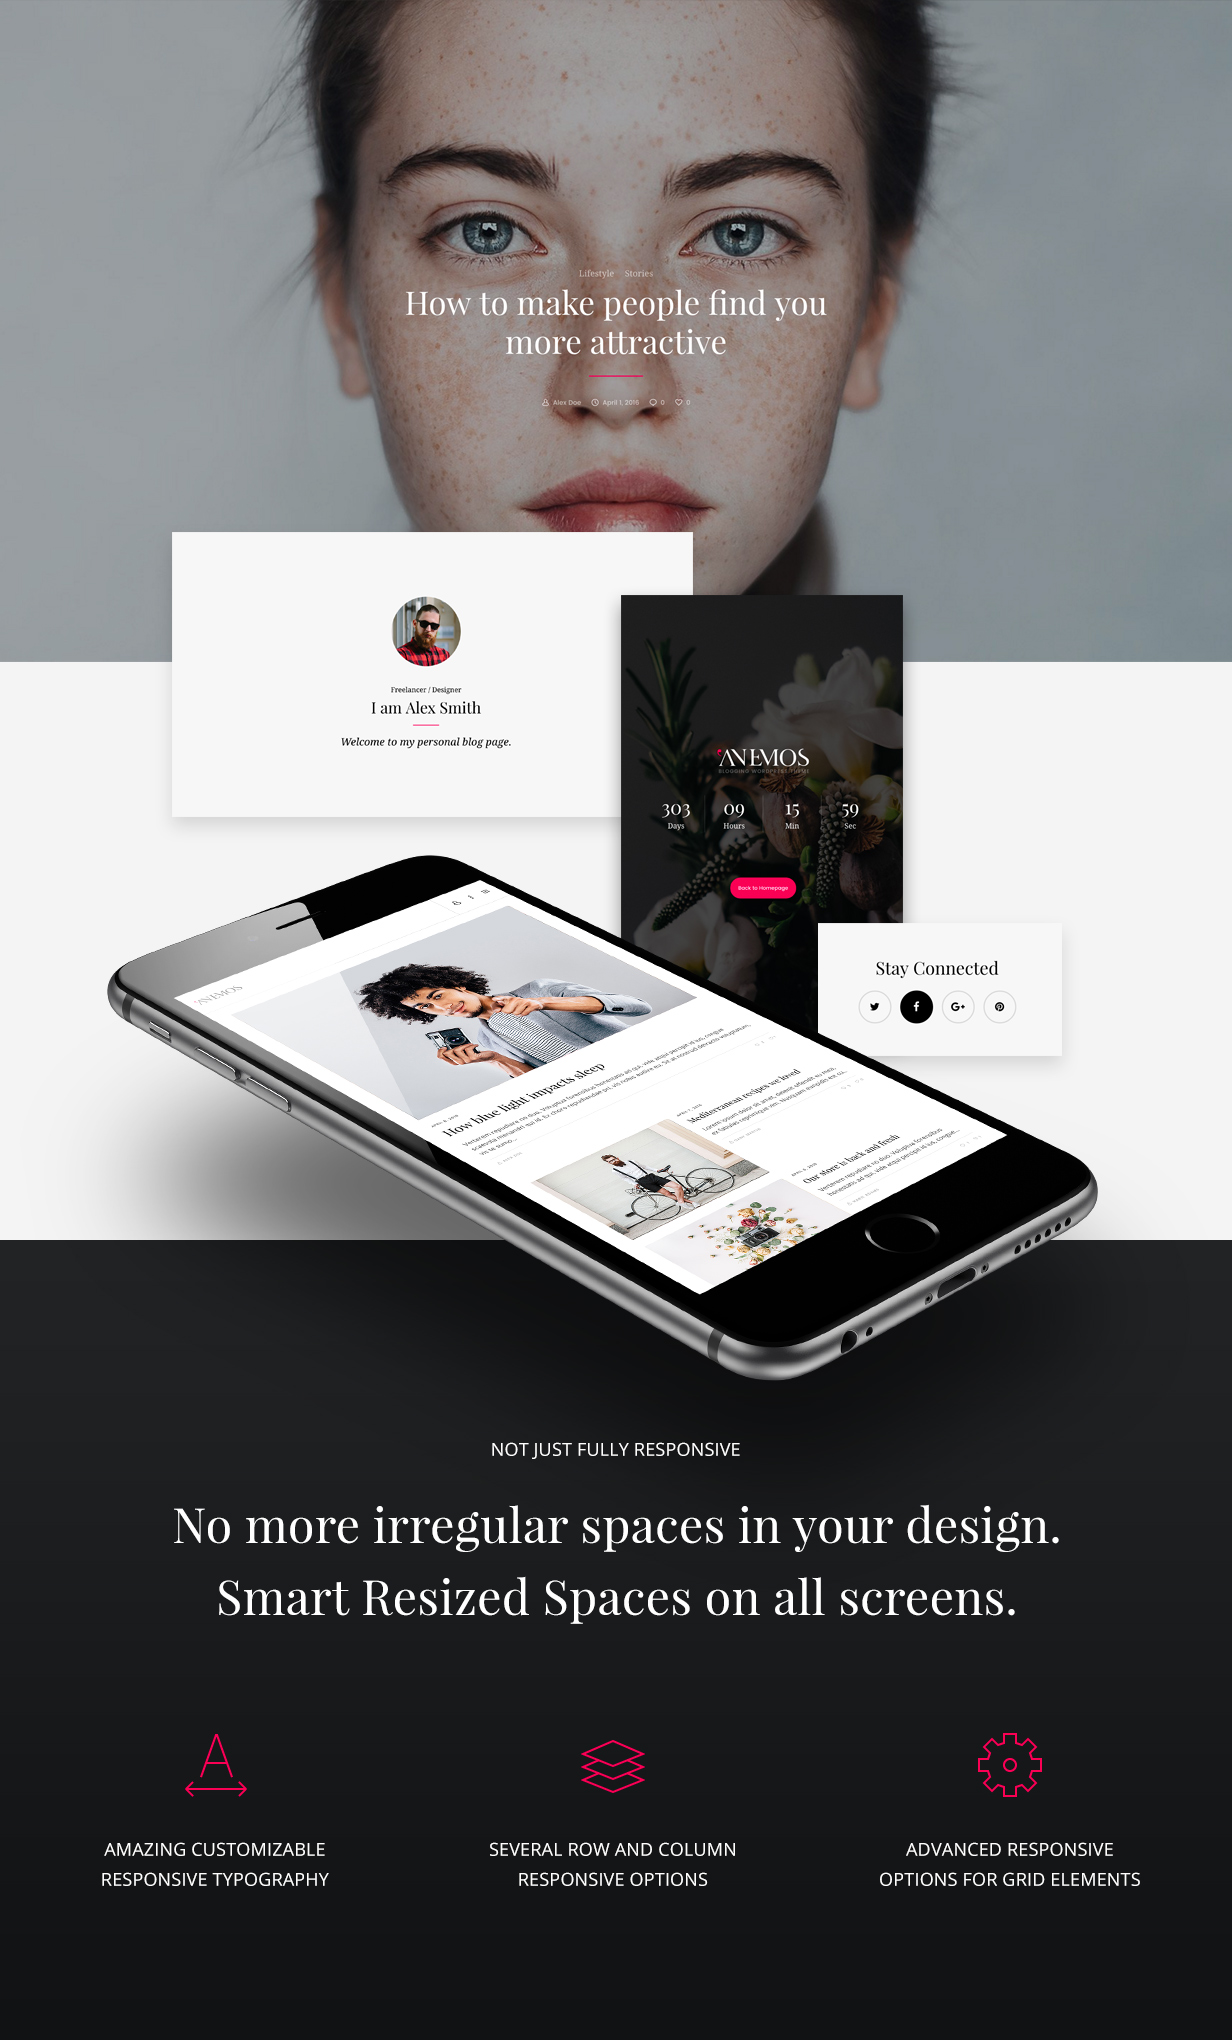 Anemos Responsive Features